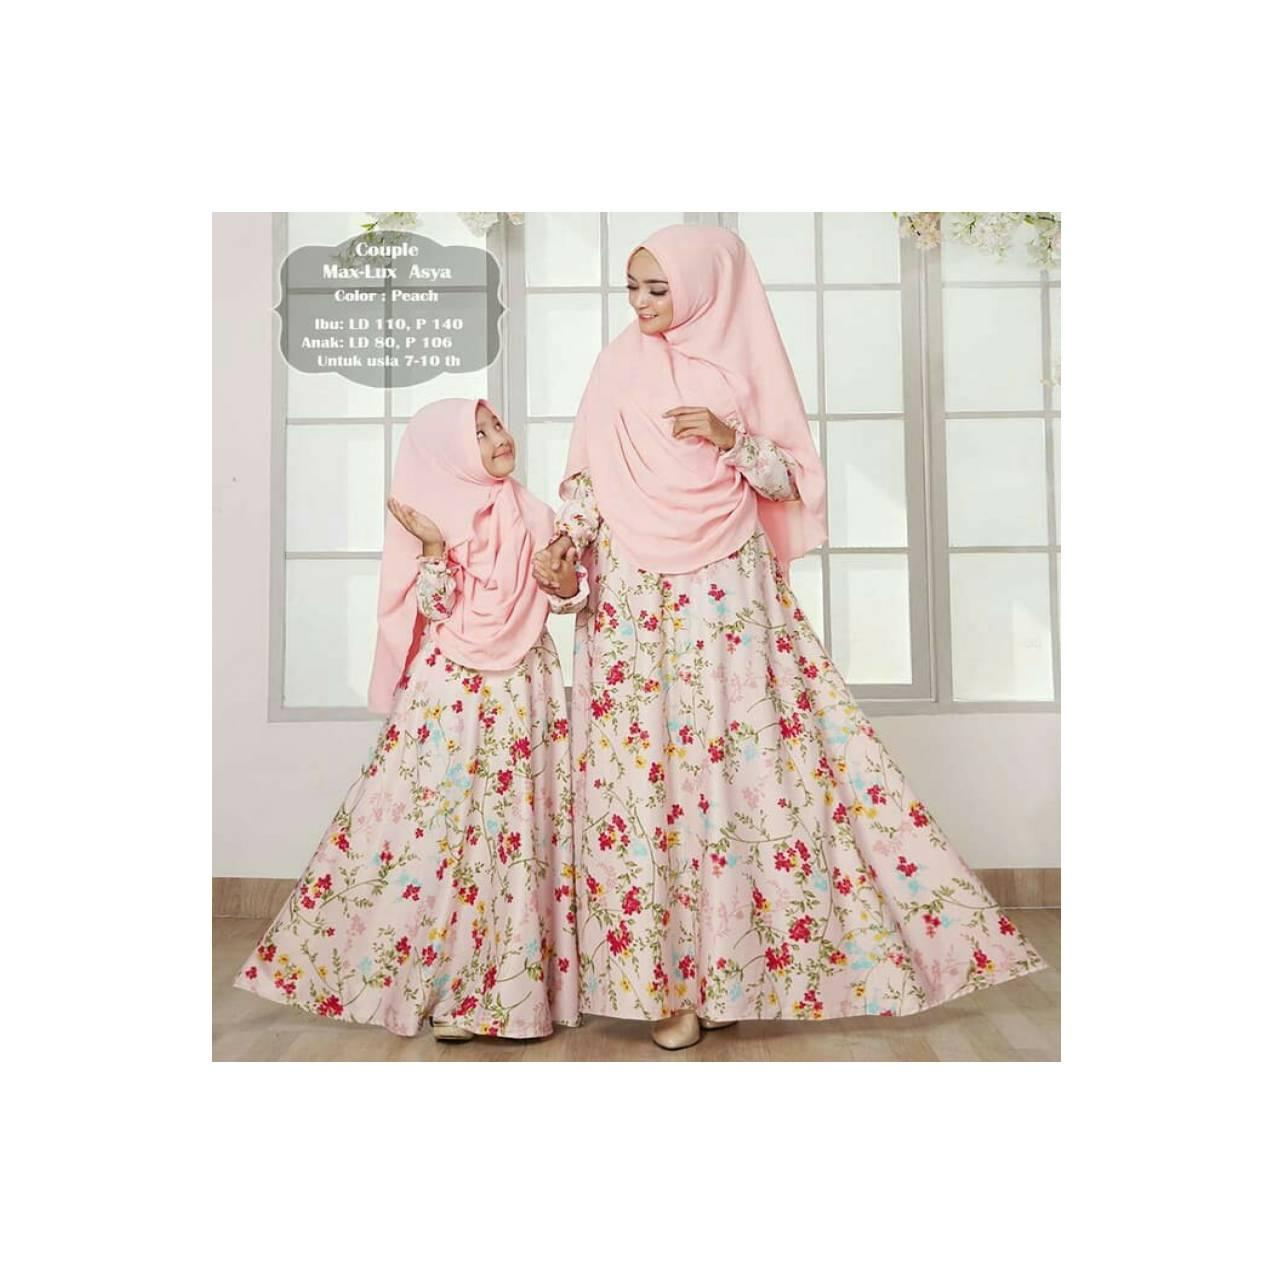 baju Couple gamis syari Murah / maxi dress pesta ibu anak asyya peach